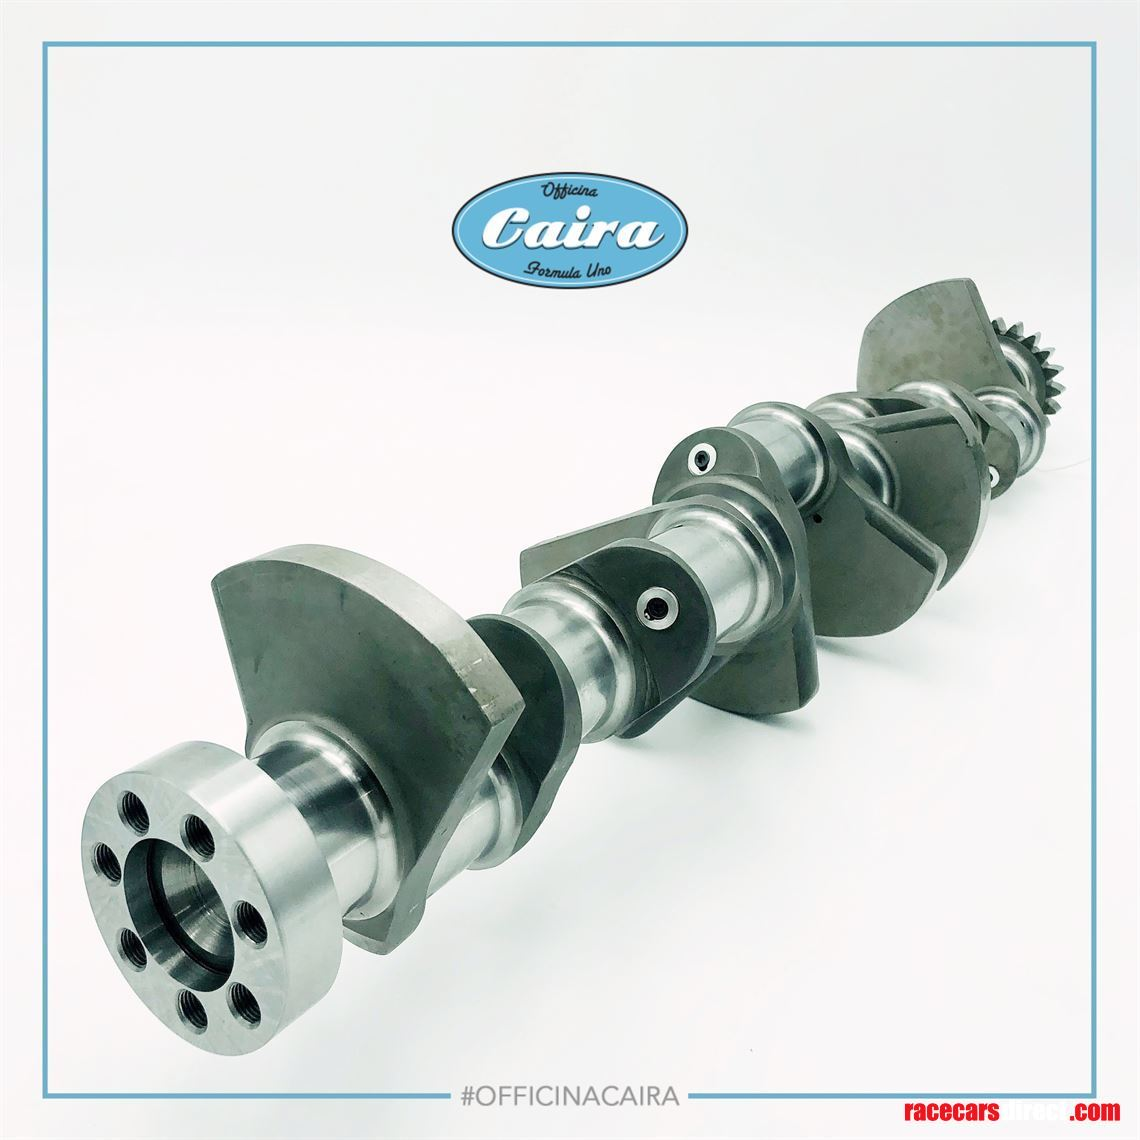 hart-twr-1030-v10---new-crankshaft--formula-o